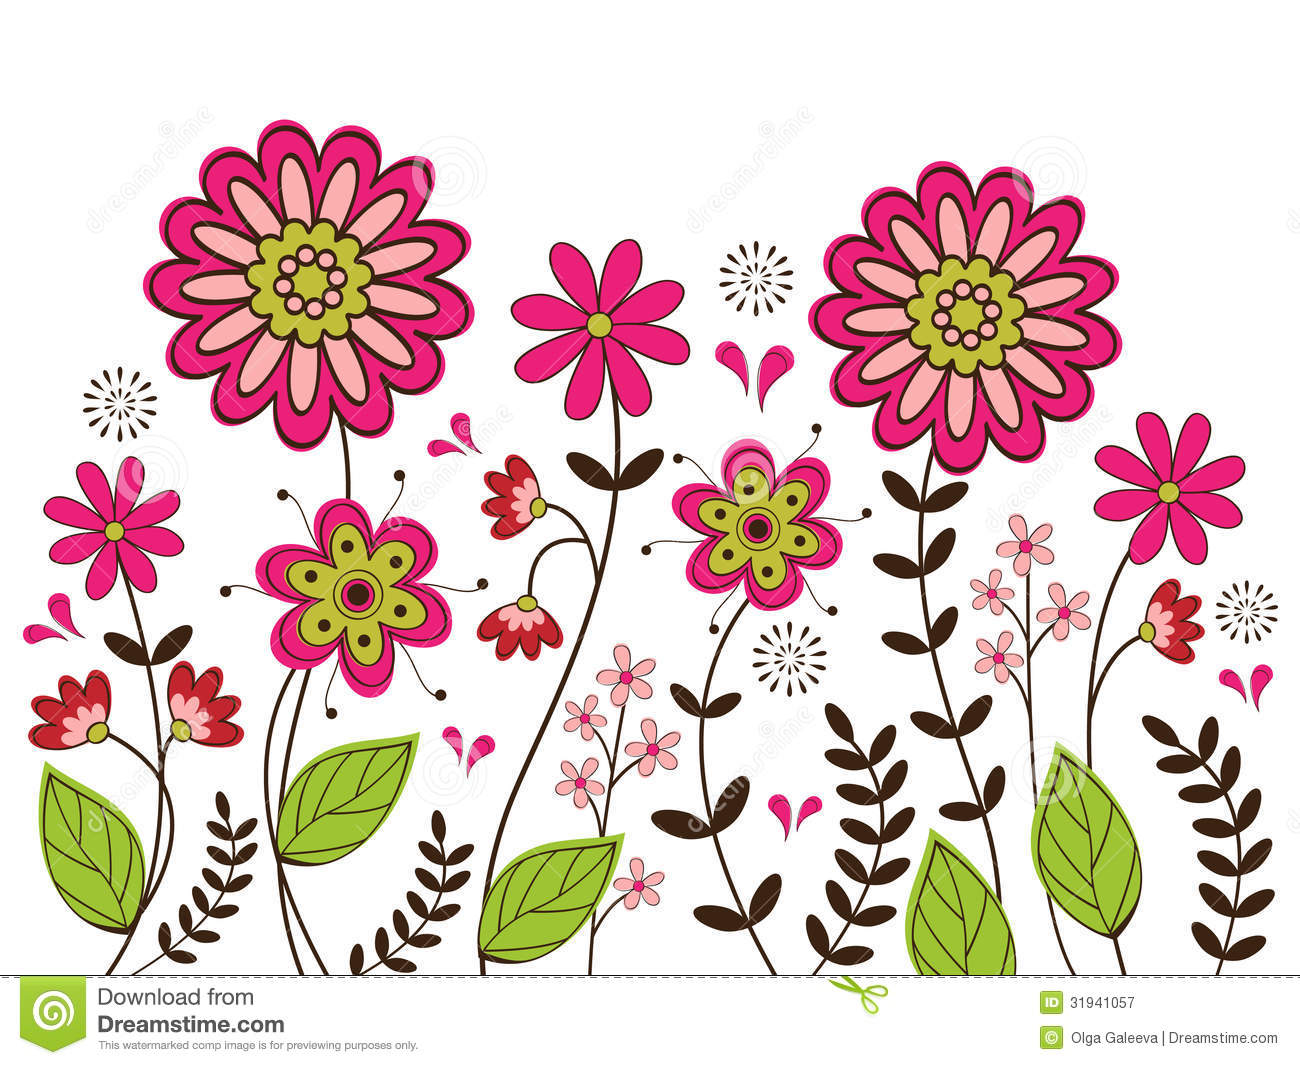 Girly Background Royalty Free Stock Photo: Cute Floral Background Stock Vector. Image Of Flower